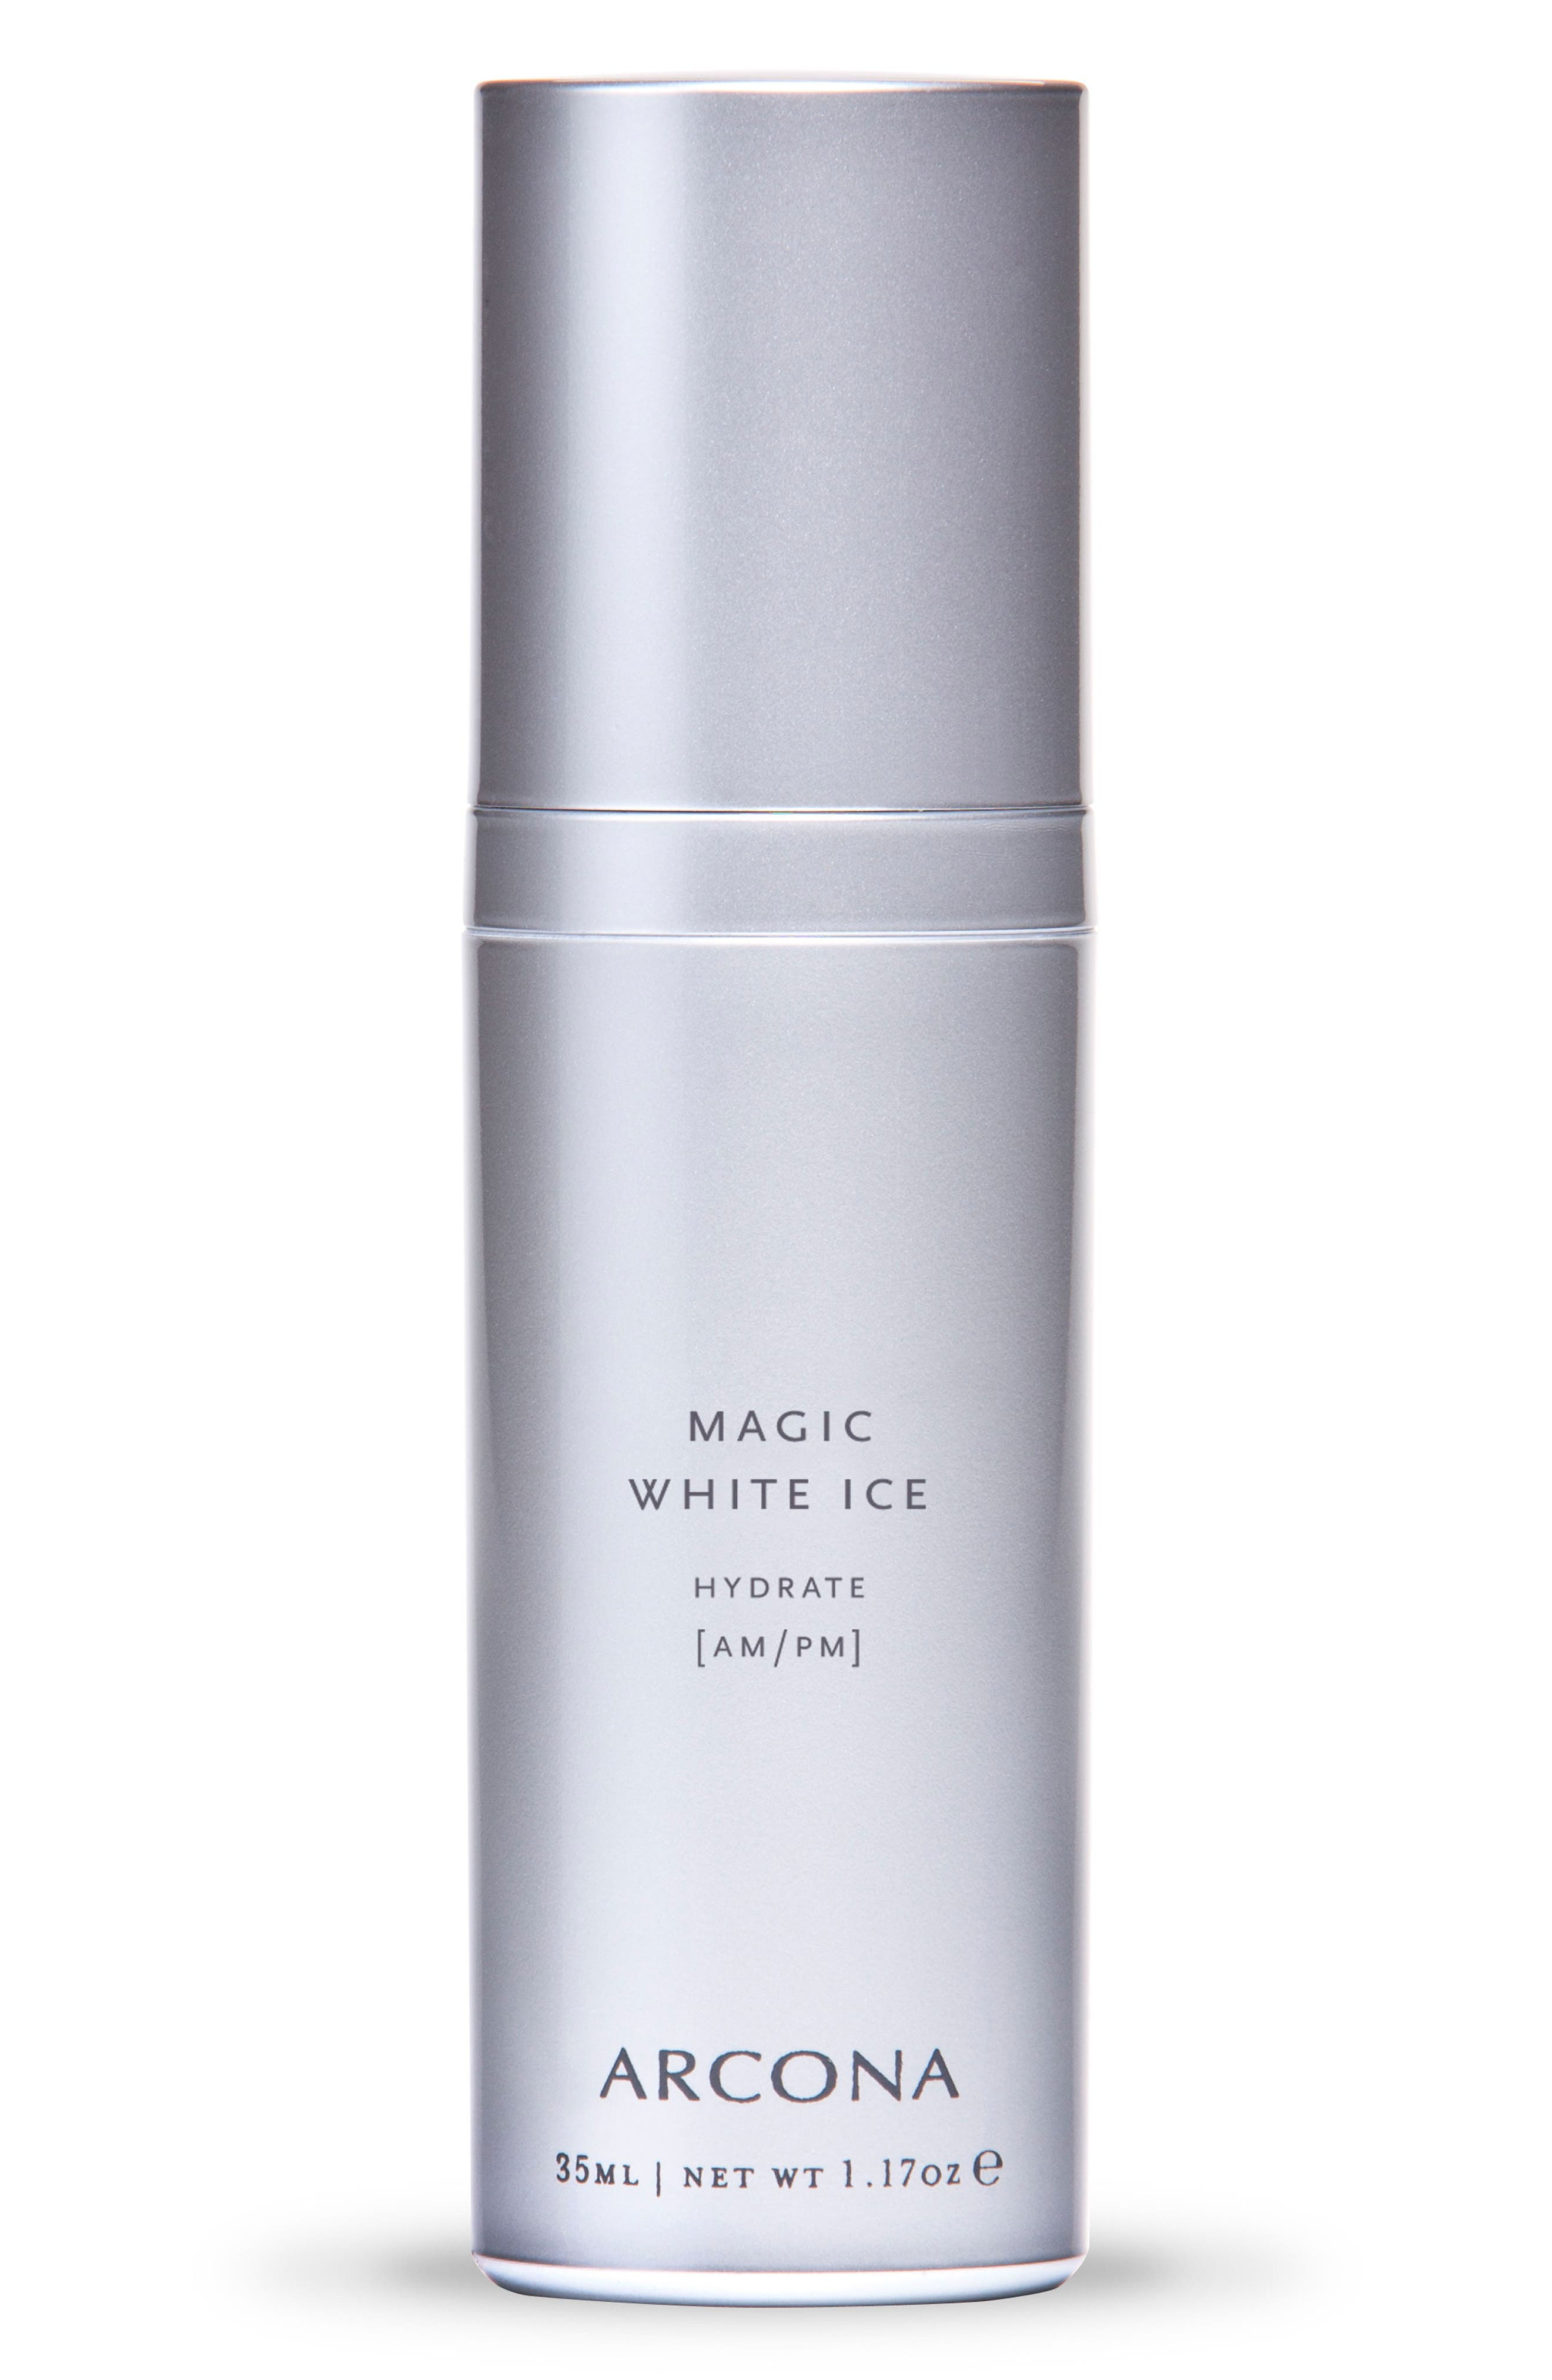 Magic White Ice Daily Hydrating Gel,                             Main thumbnail 1, color,                             NO COLOR